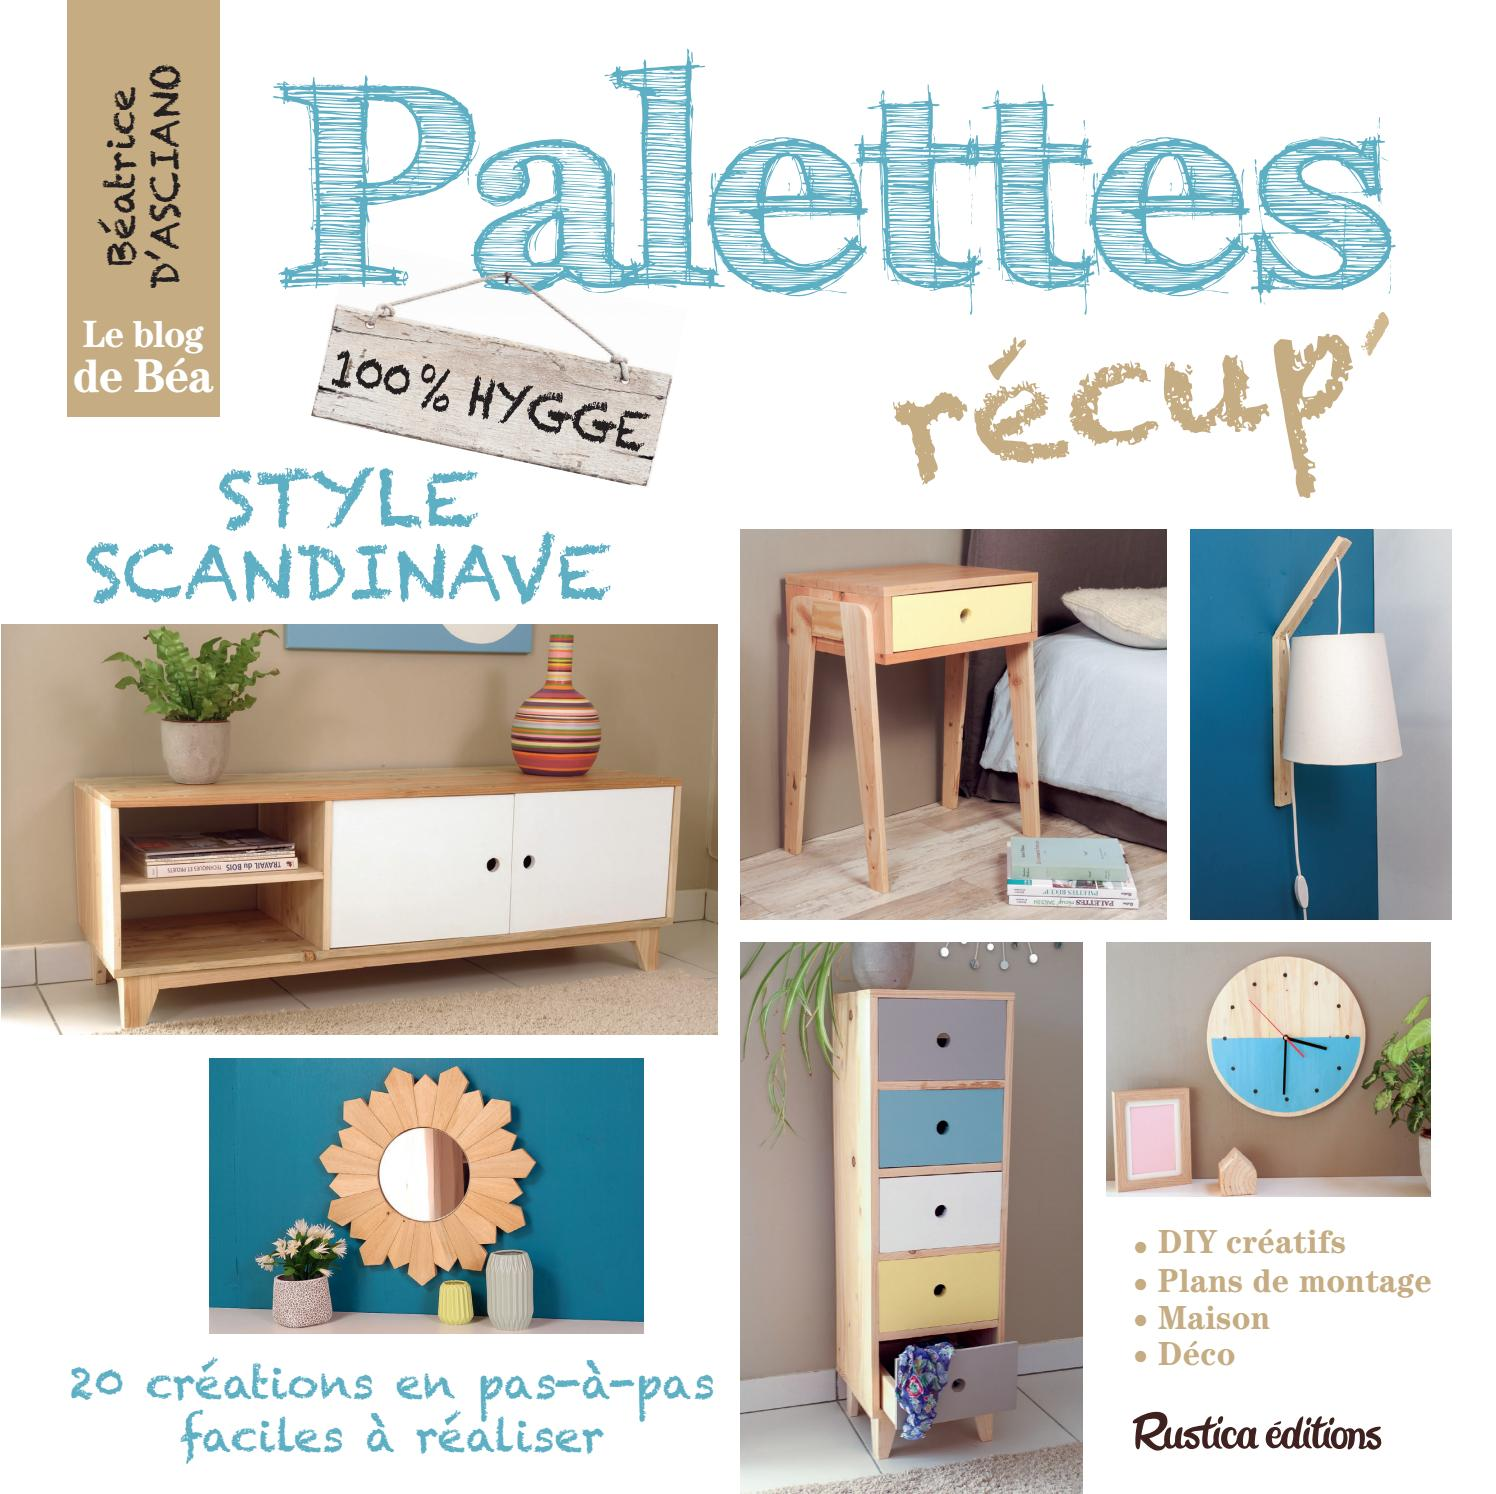 Editions Palettes Scandinave Rustica By Ext Fleurus Issuu 8mNn0vw